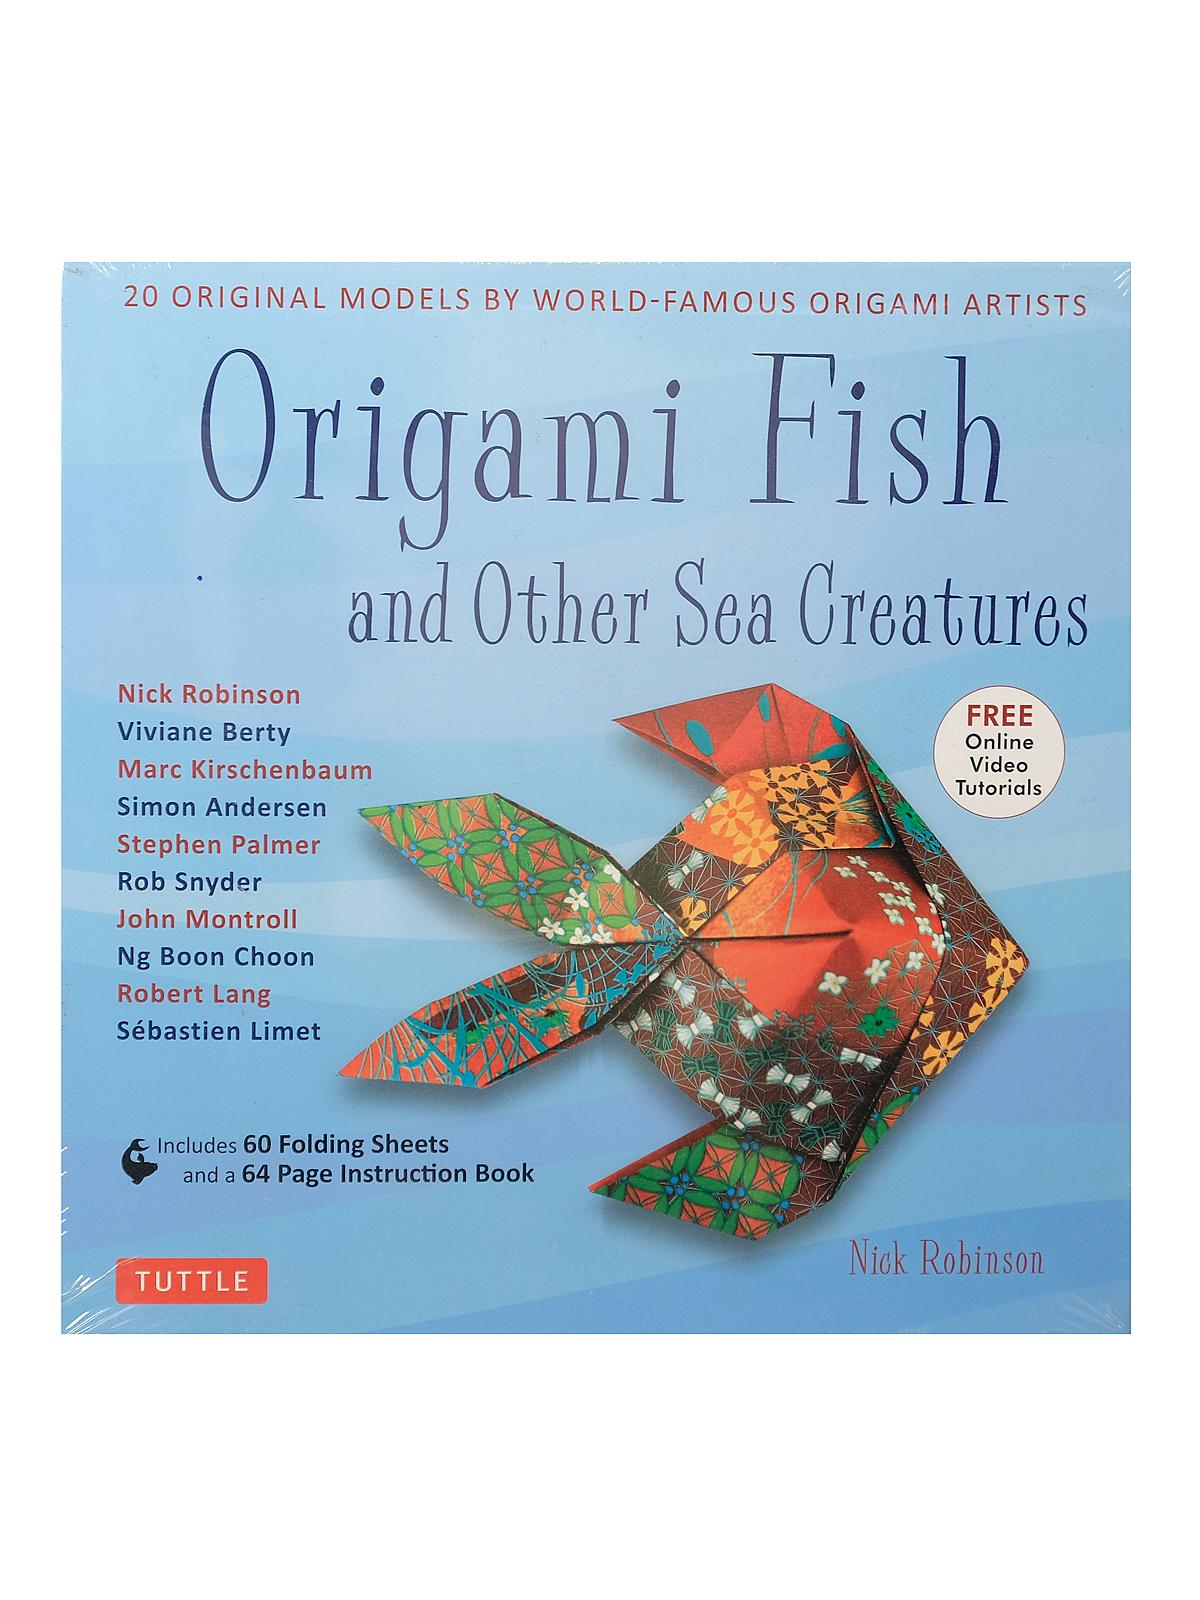 Origami Fish & Other Sea Creatures Kit